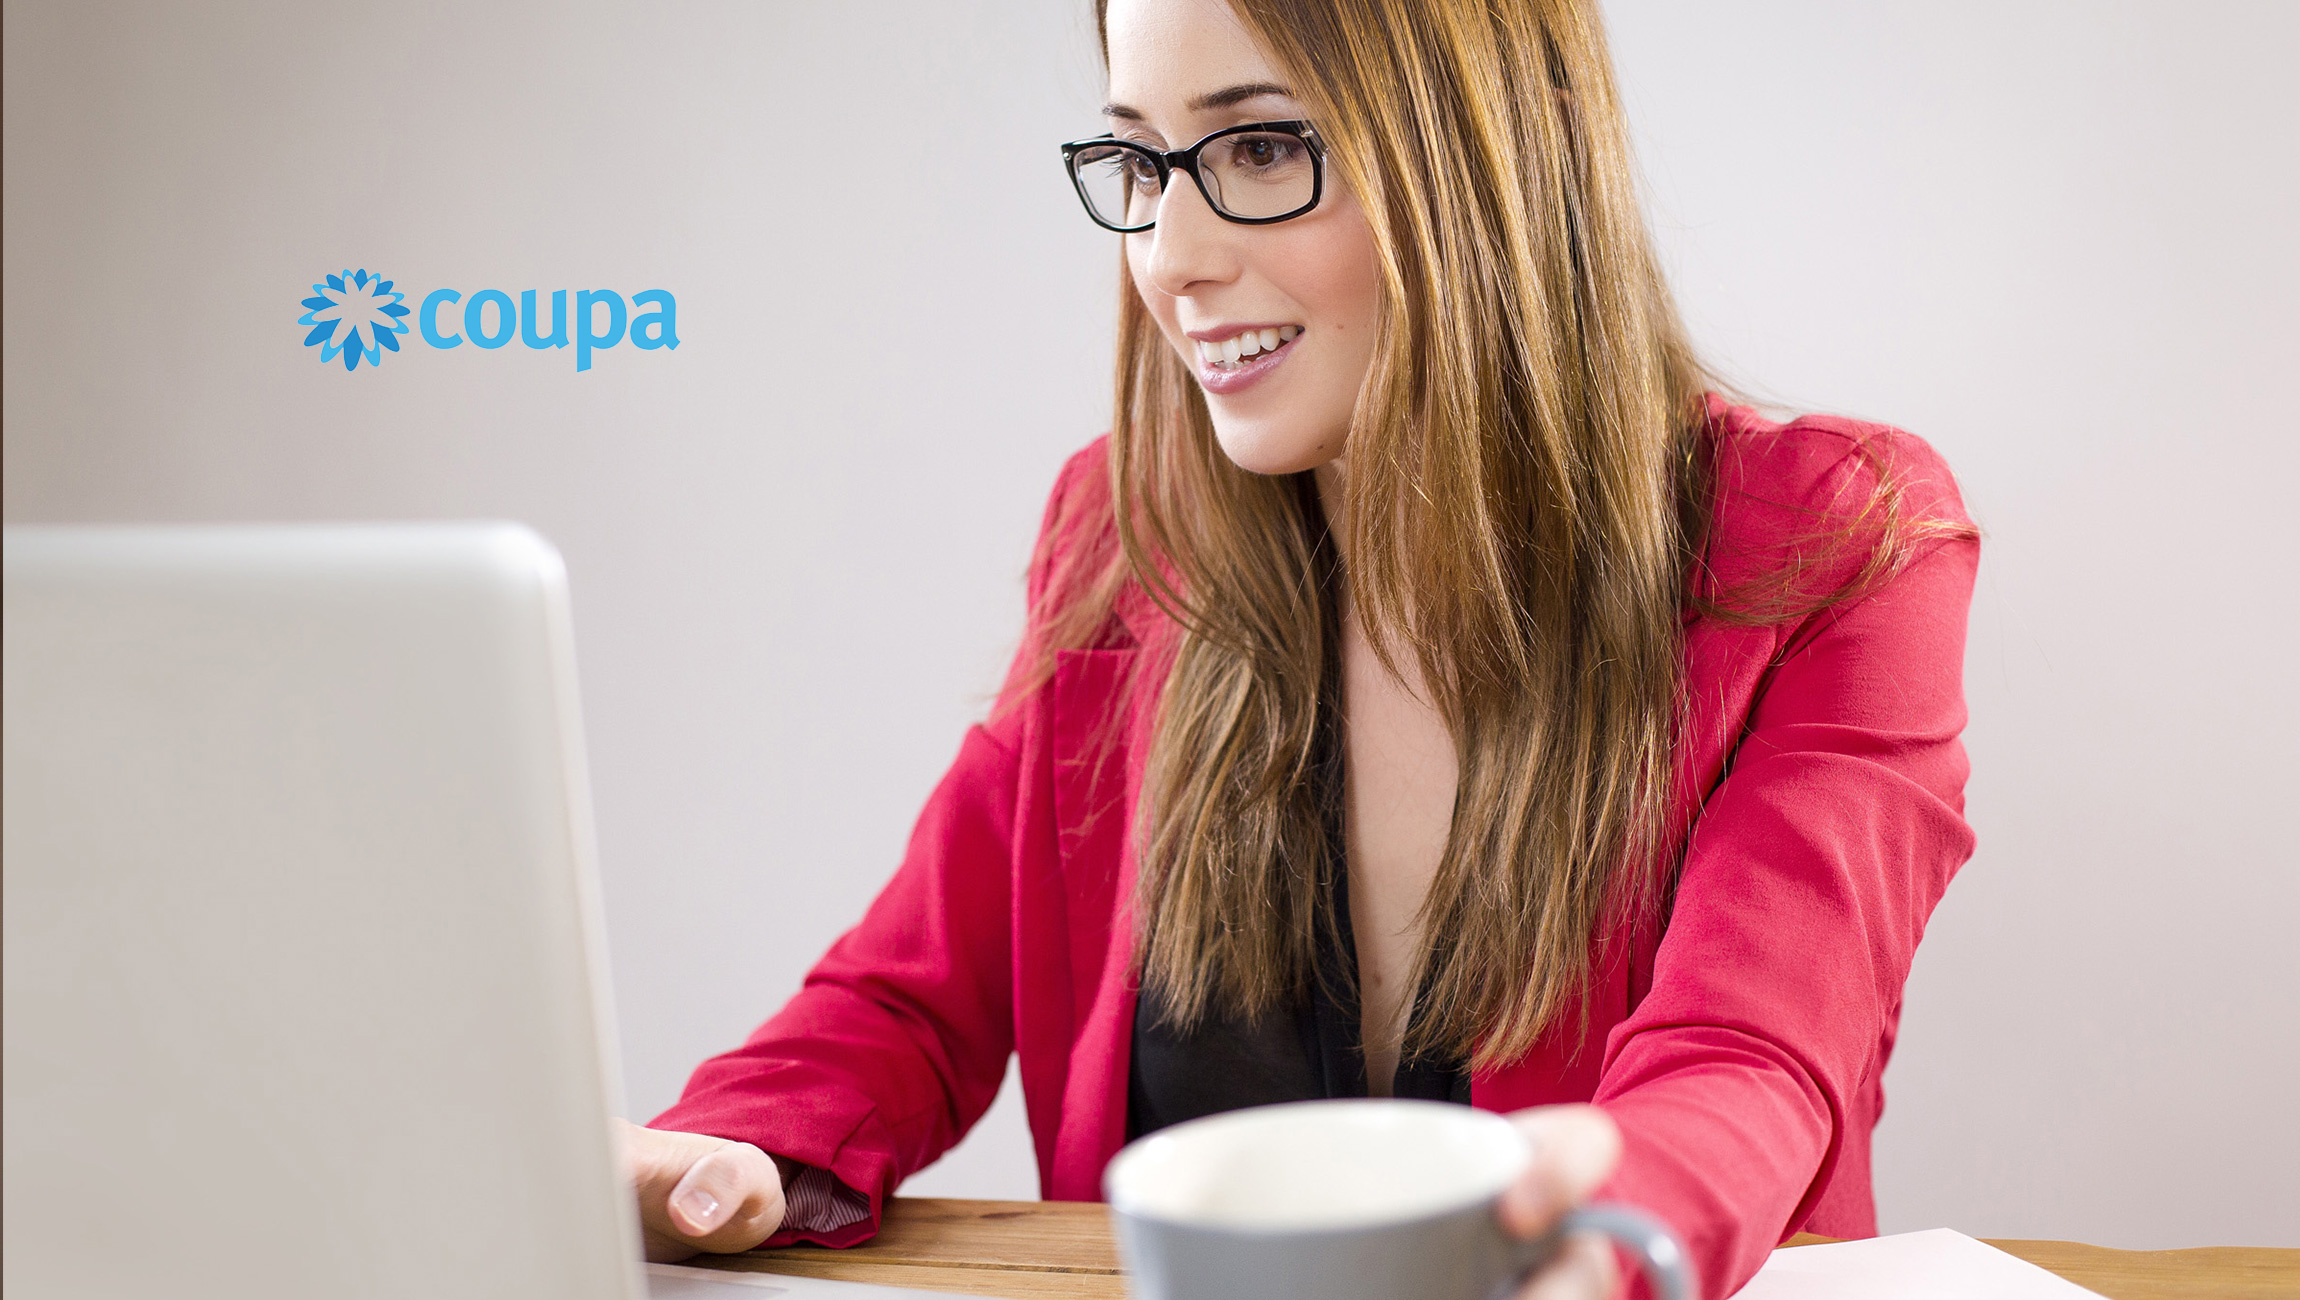 Coupa Unveils Vision to Transform Fragmented B2B Payments Process with New Coupa Pay Offering